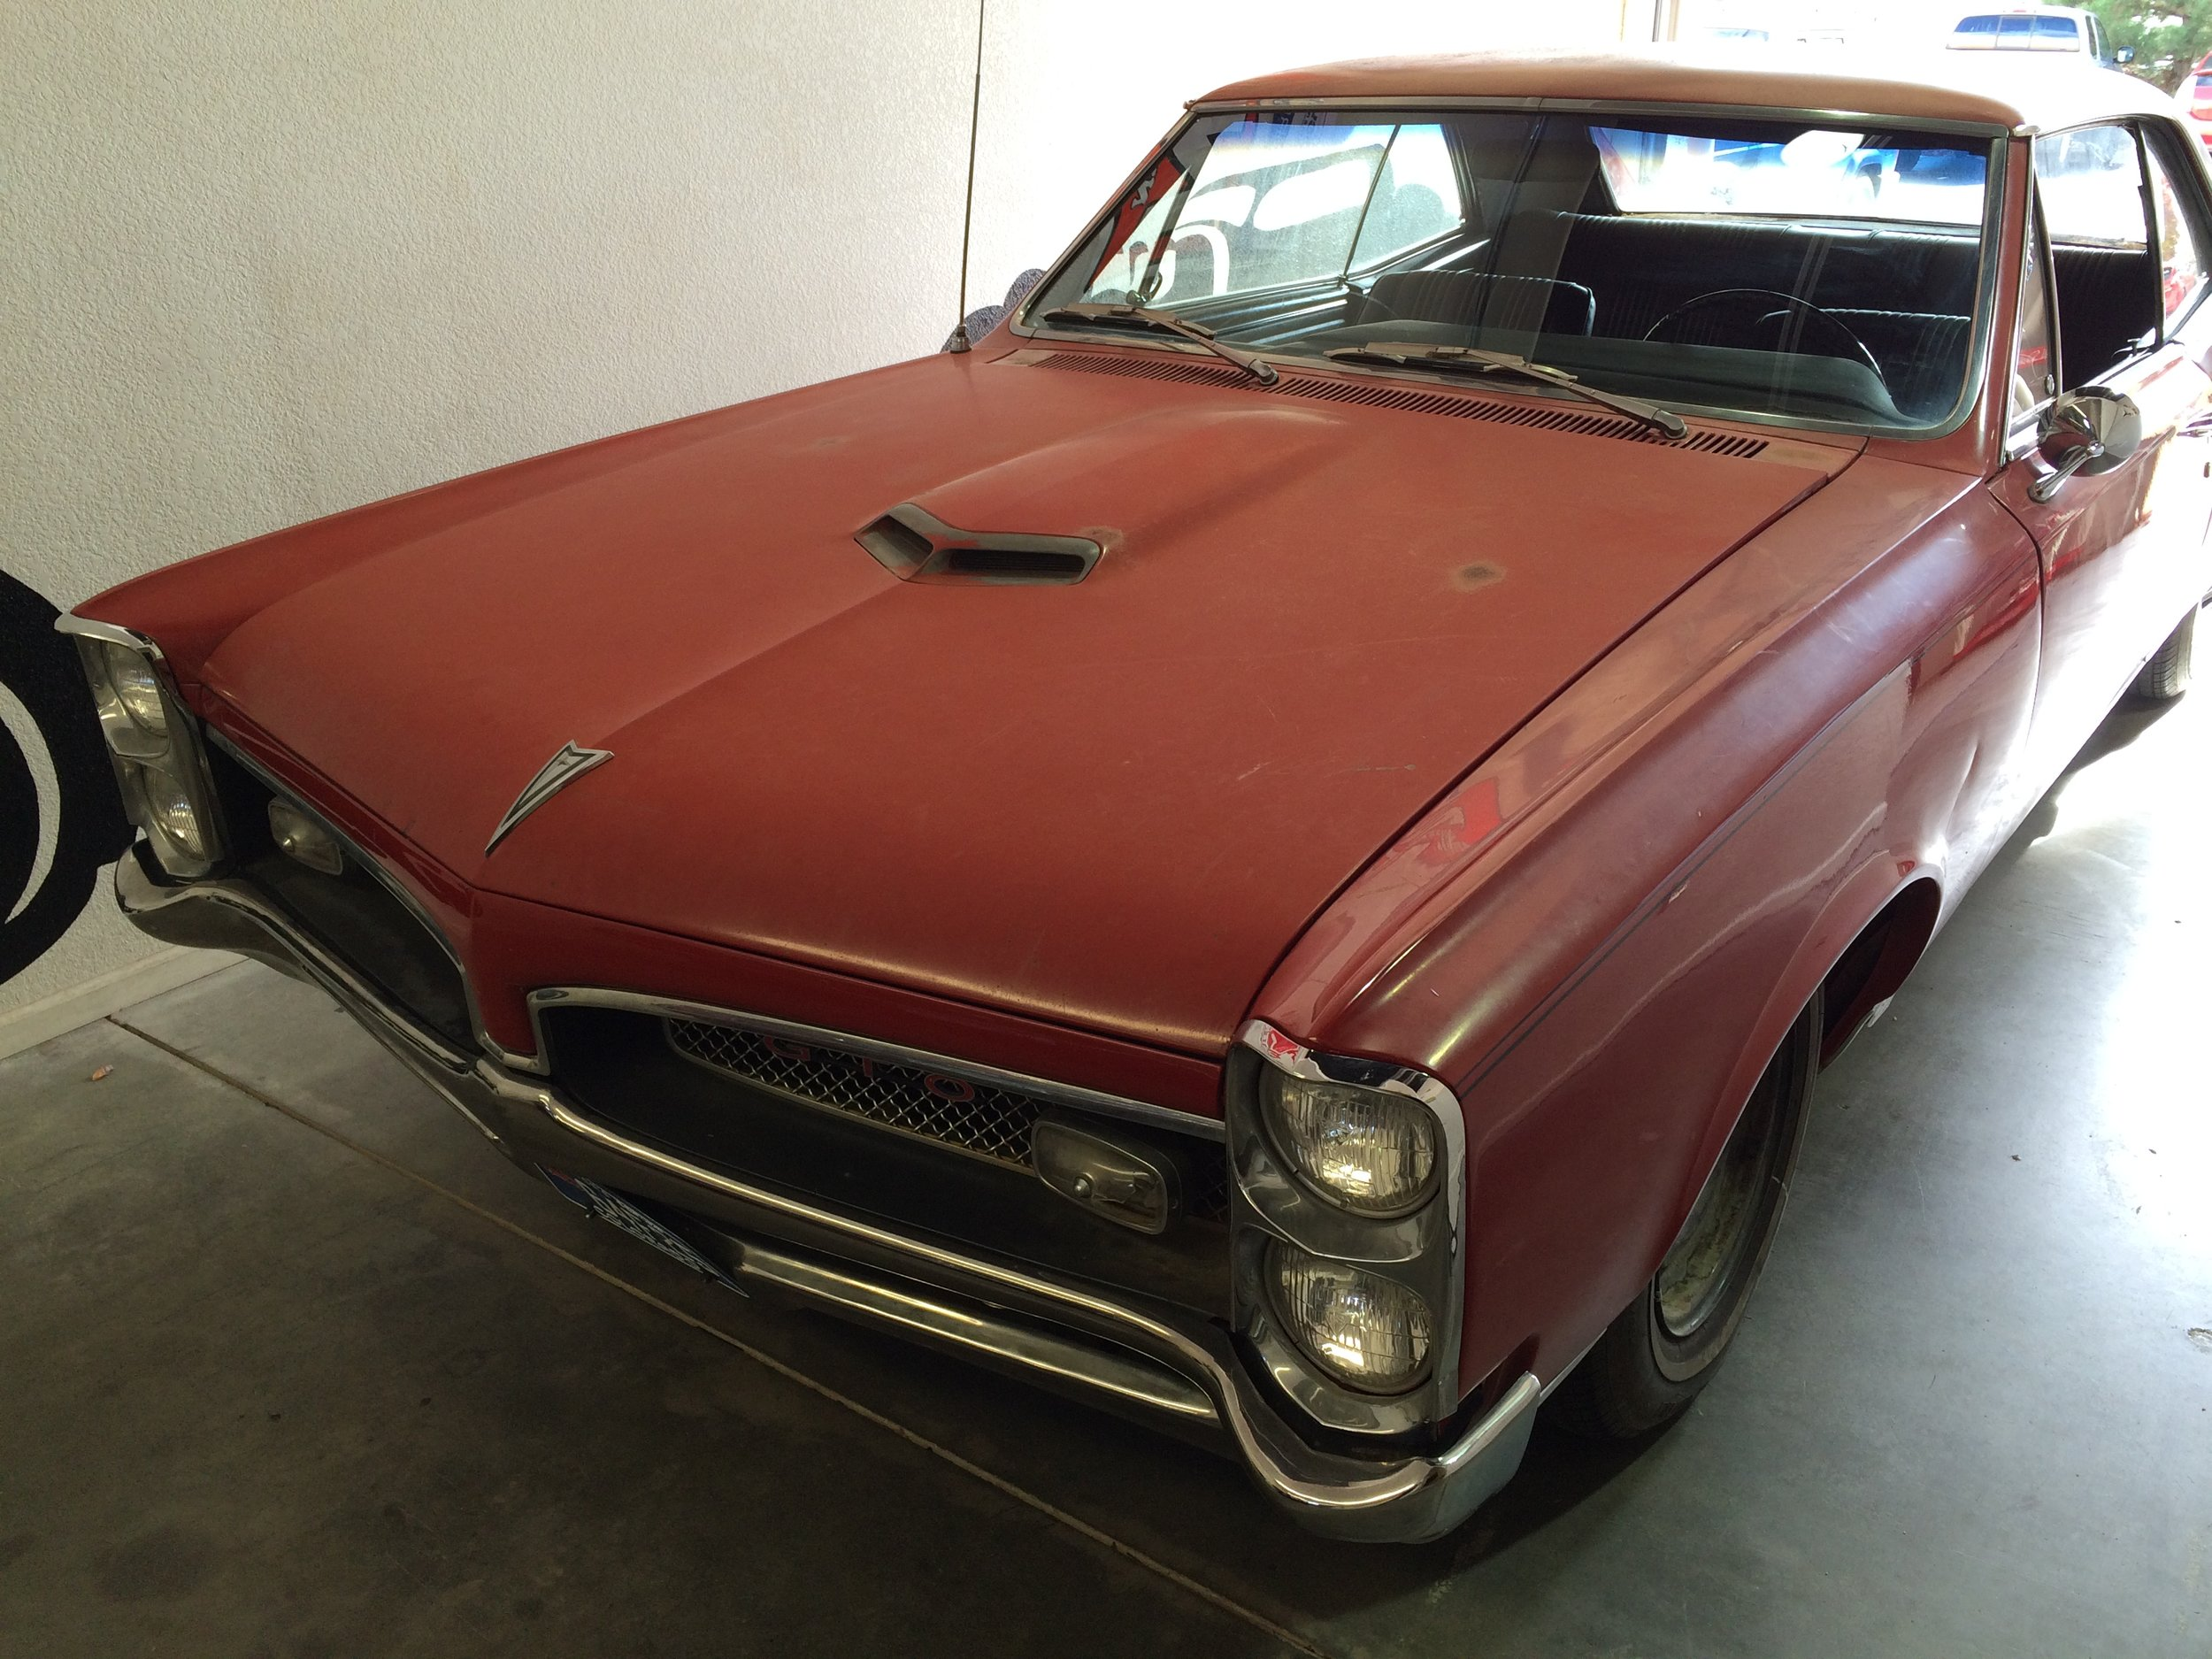 The GTO came into the shop as a totally stock, single owner car - In this photo you can see the car was all there, just needed to be brought back to life. The paint had faded because of the sun. Interior cracked and faded. Suspension was soft and old.